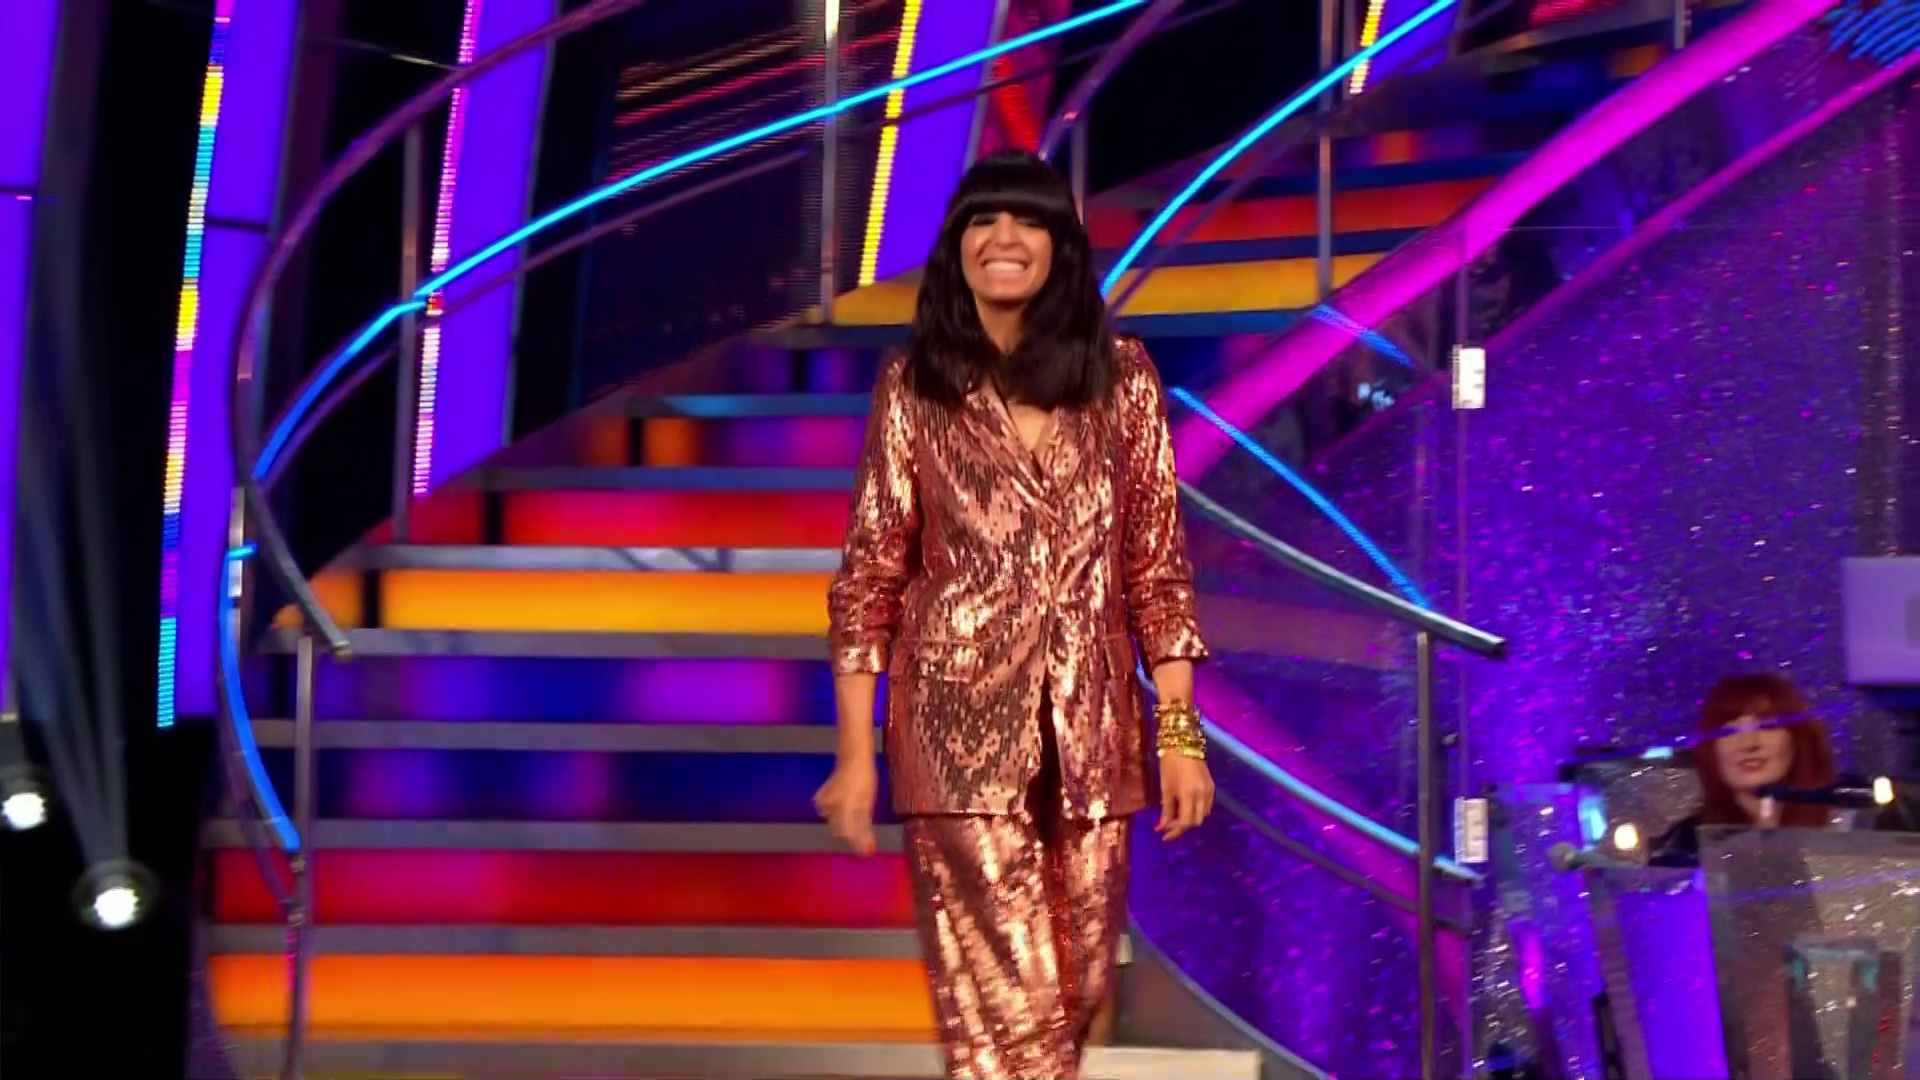 Strictly Come Dancing viewers baffled by Claudia Winkelman's sparkly 'pyjamas' outfit